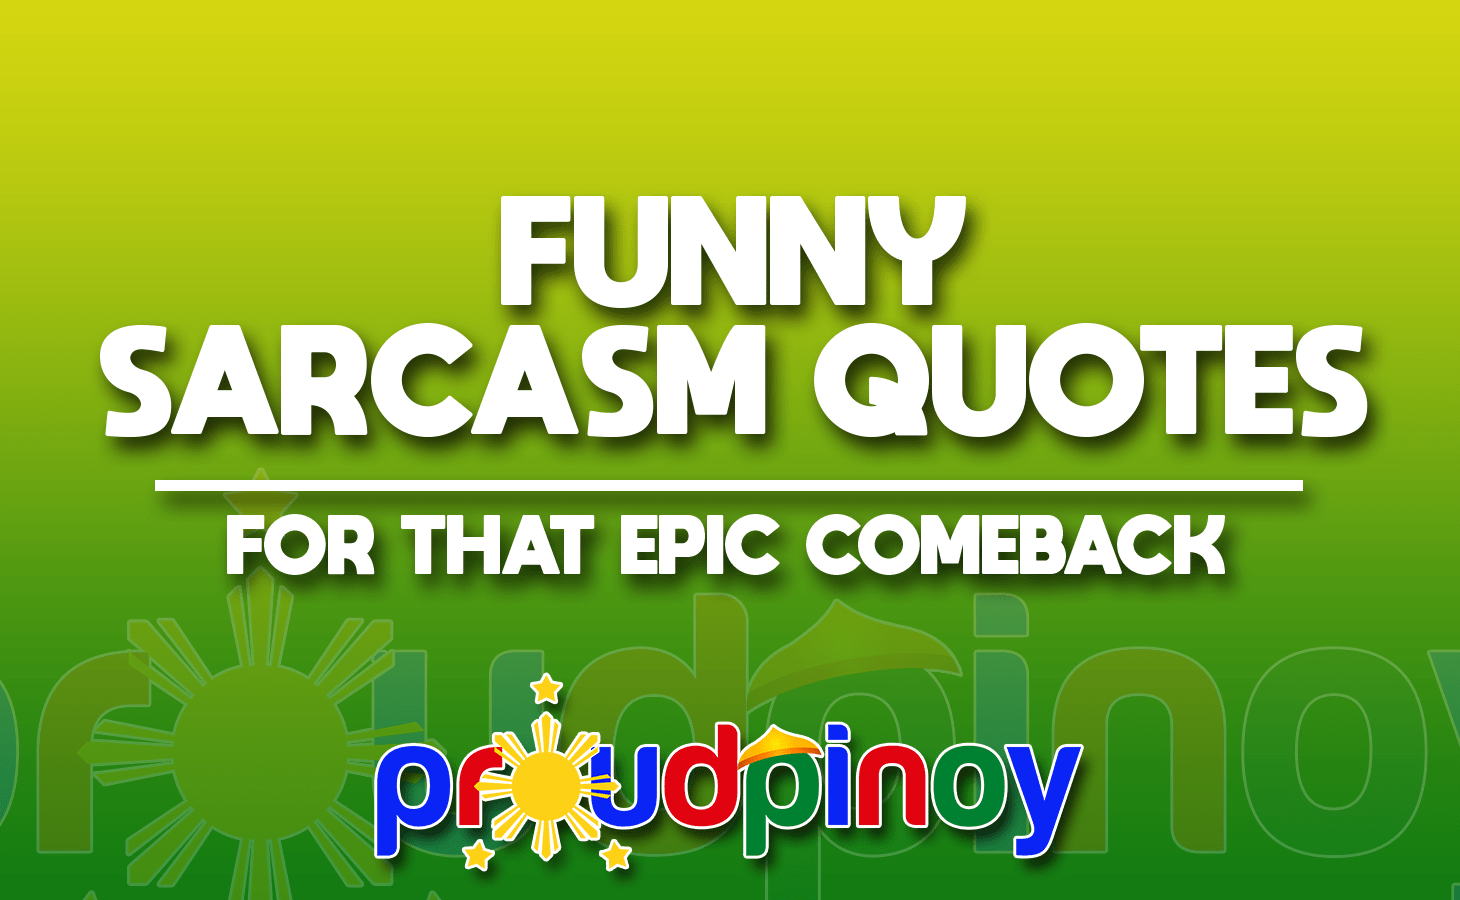 Funny Sarcasm quotes for that epic comeback